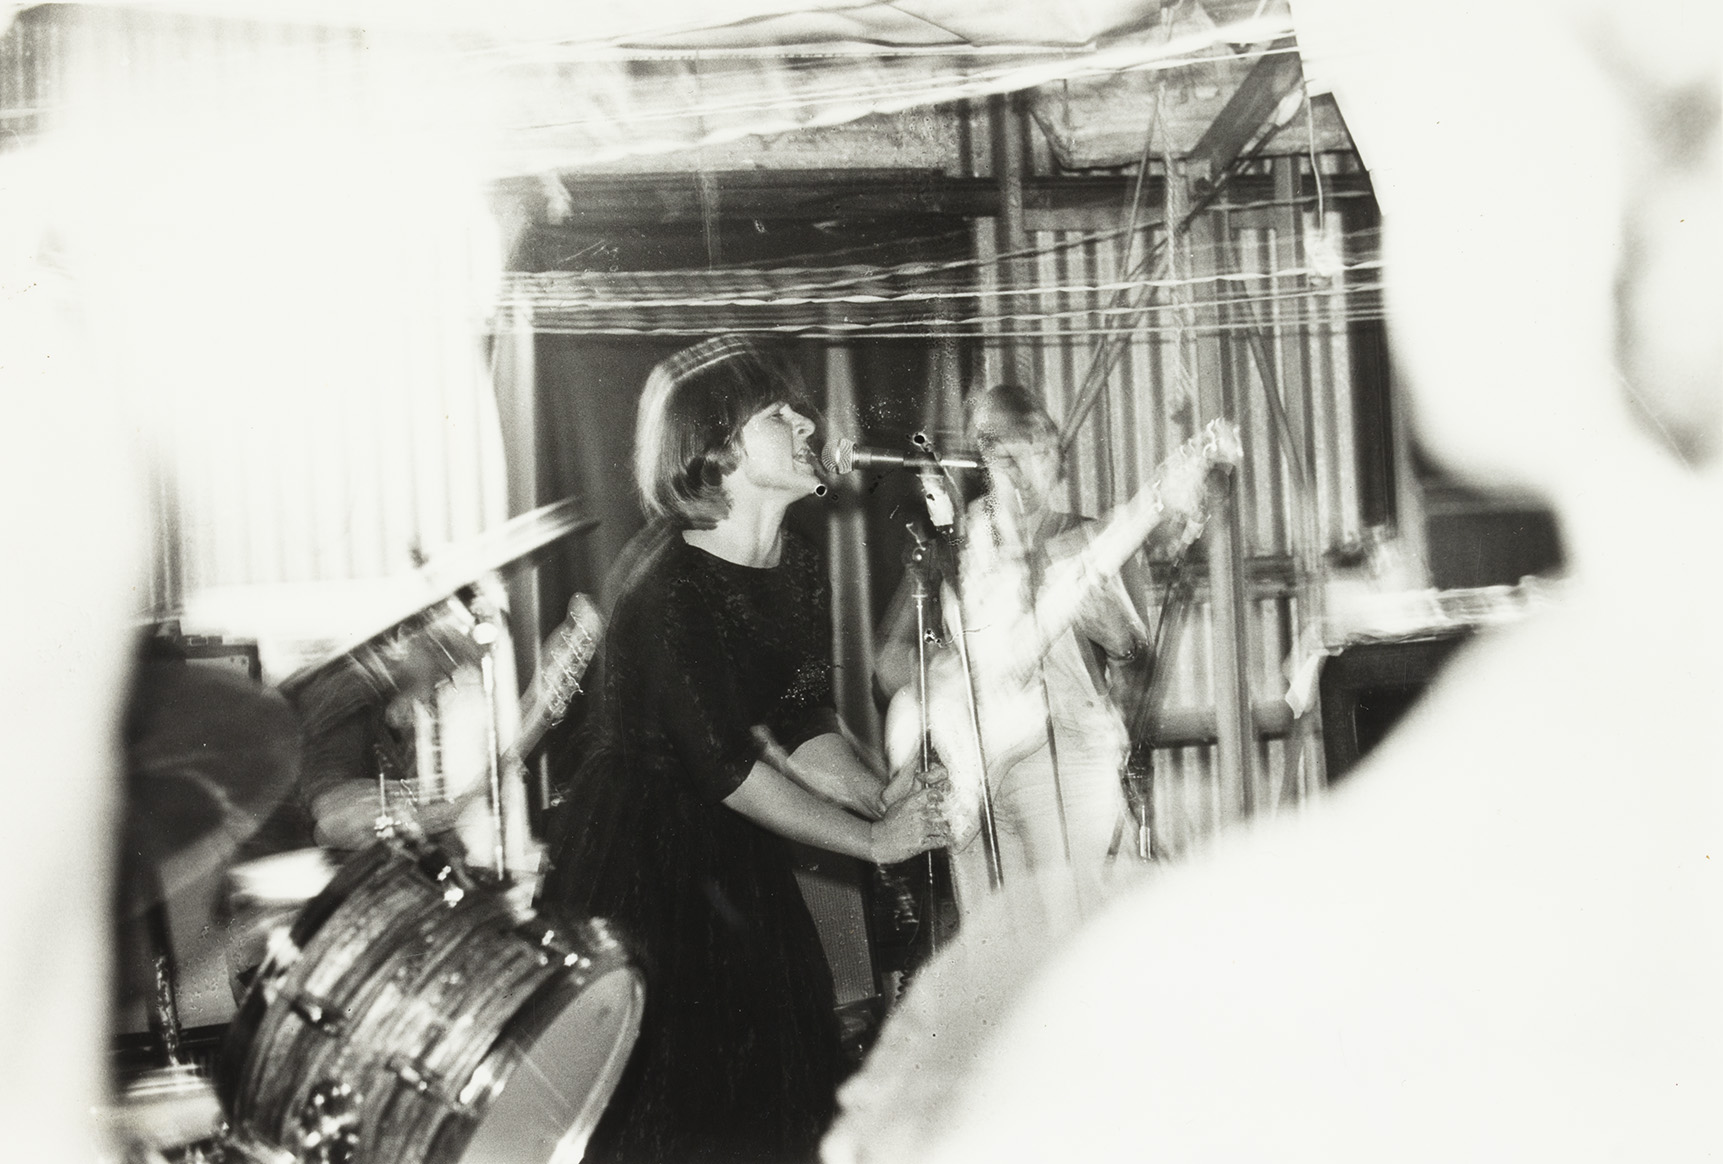 A black and white photo of a singer in a band, with a shaky effect.